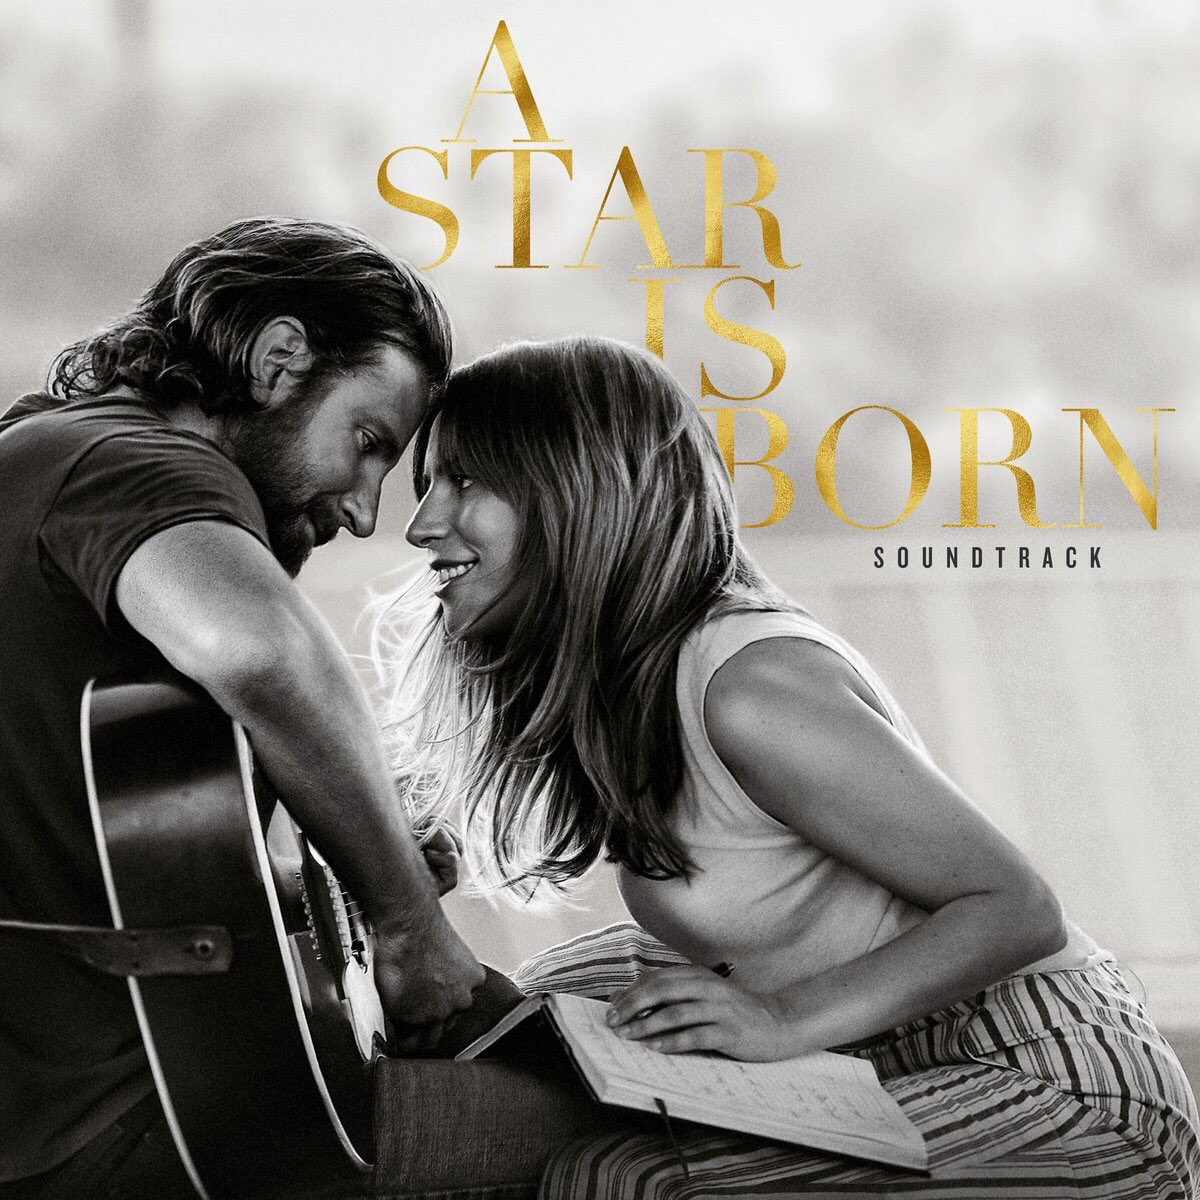 Best selling albums of 2019 in the USA    #1 A Star is Born Soundtrack #2 Thank U, Next <br>http://pic.twitter.com/zwg3qyCJ2c